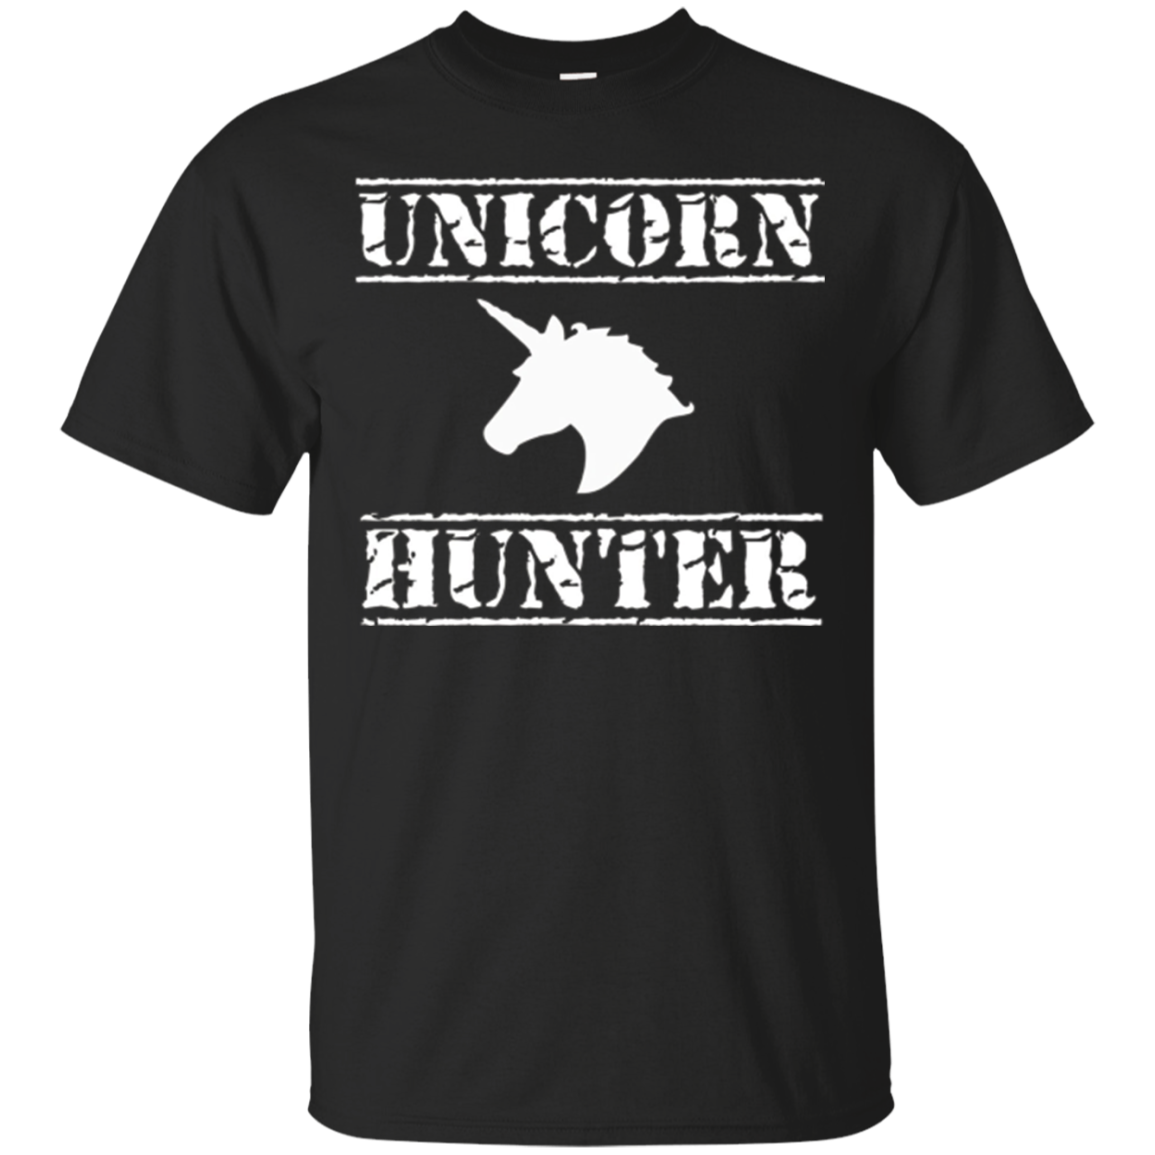 Unicorn Hunter T-Shirt, Mens Horse Humor Novelty